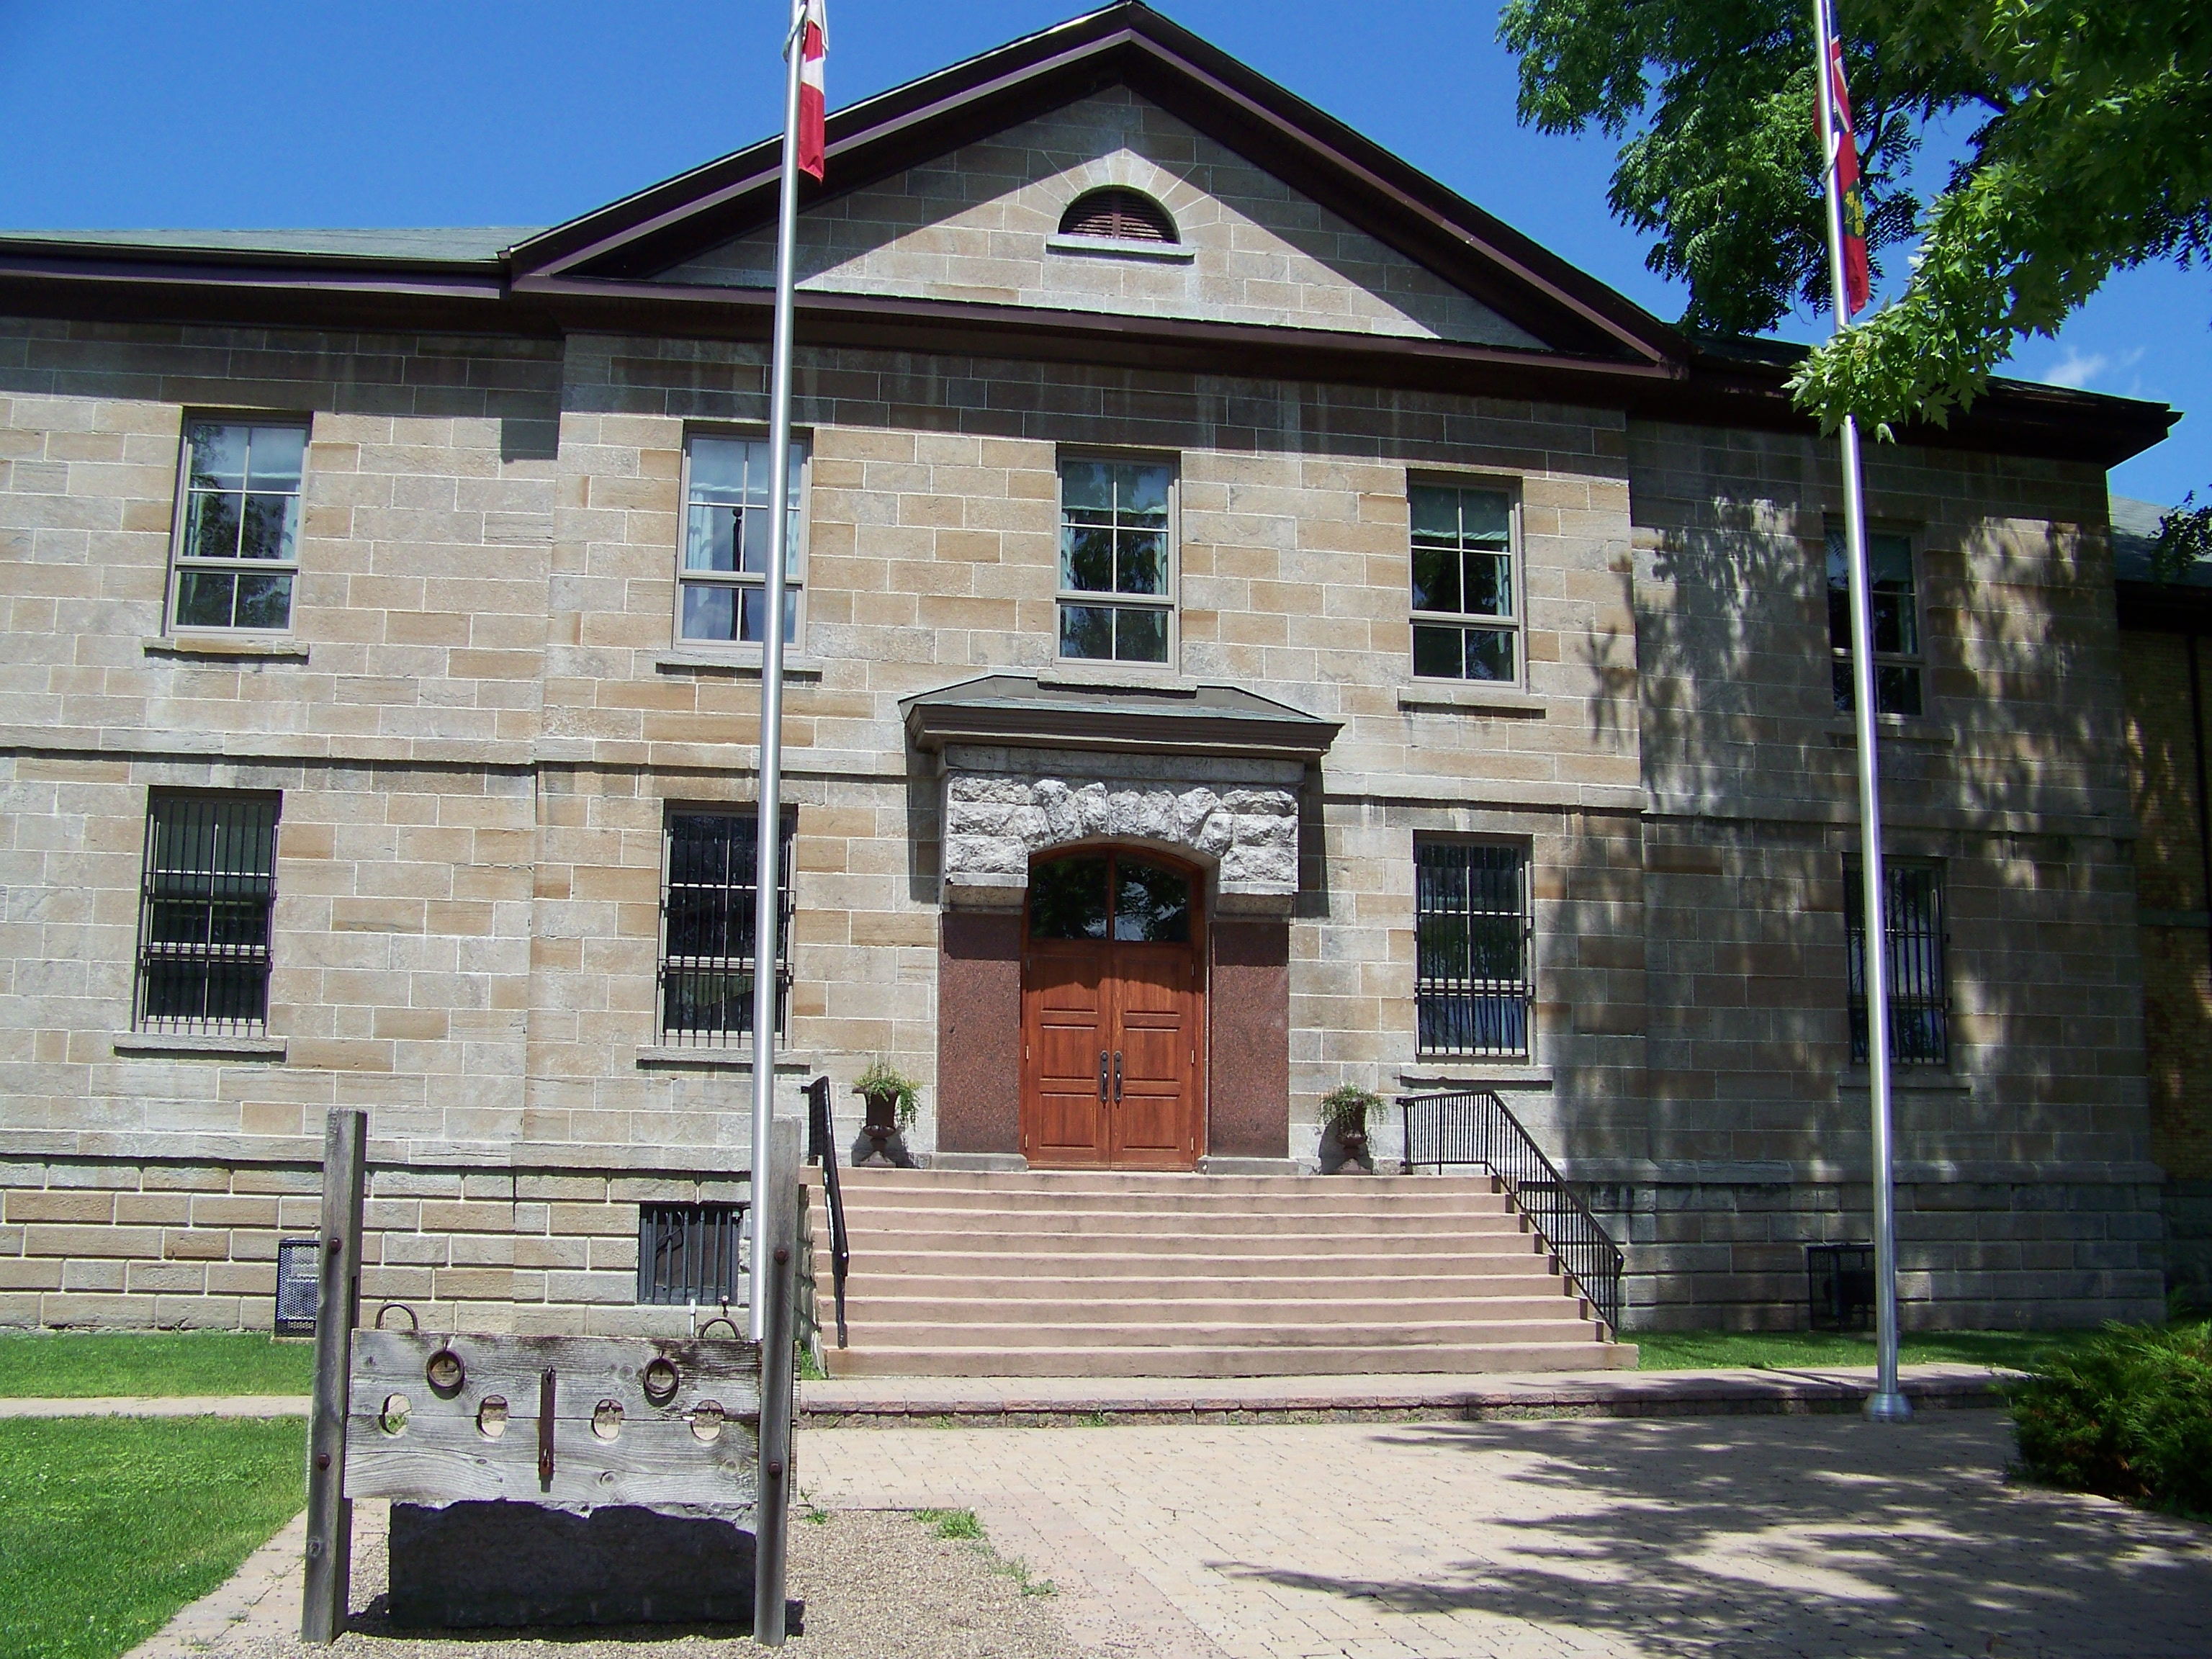 Take a guided tour at the Cornwall Jail